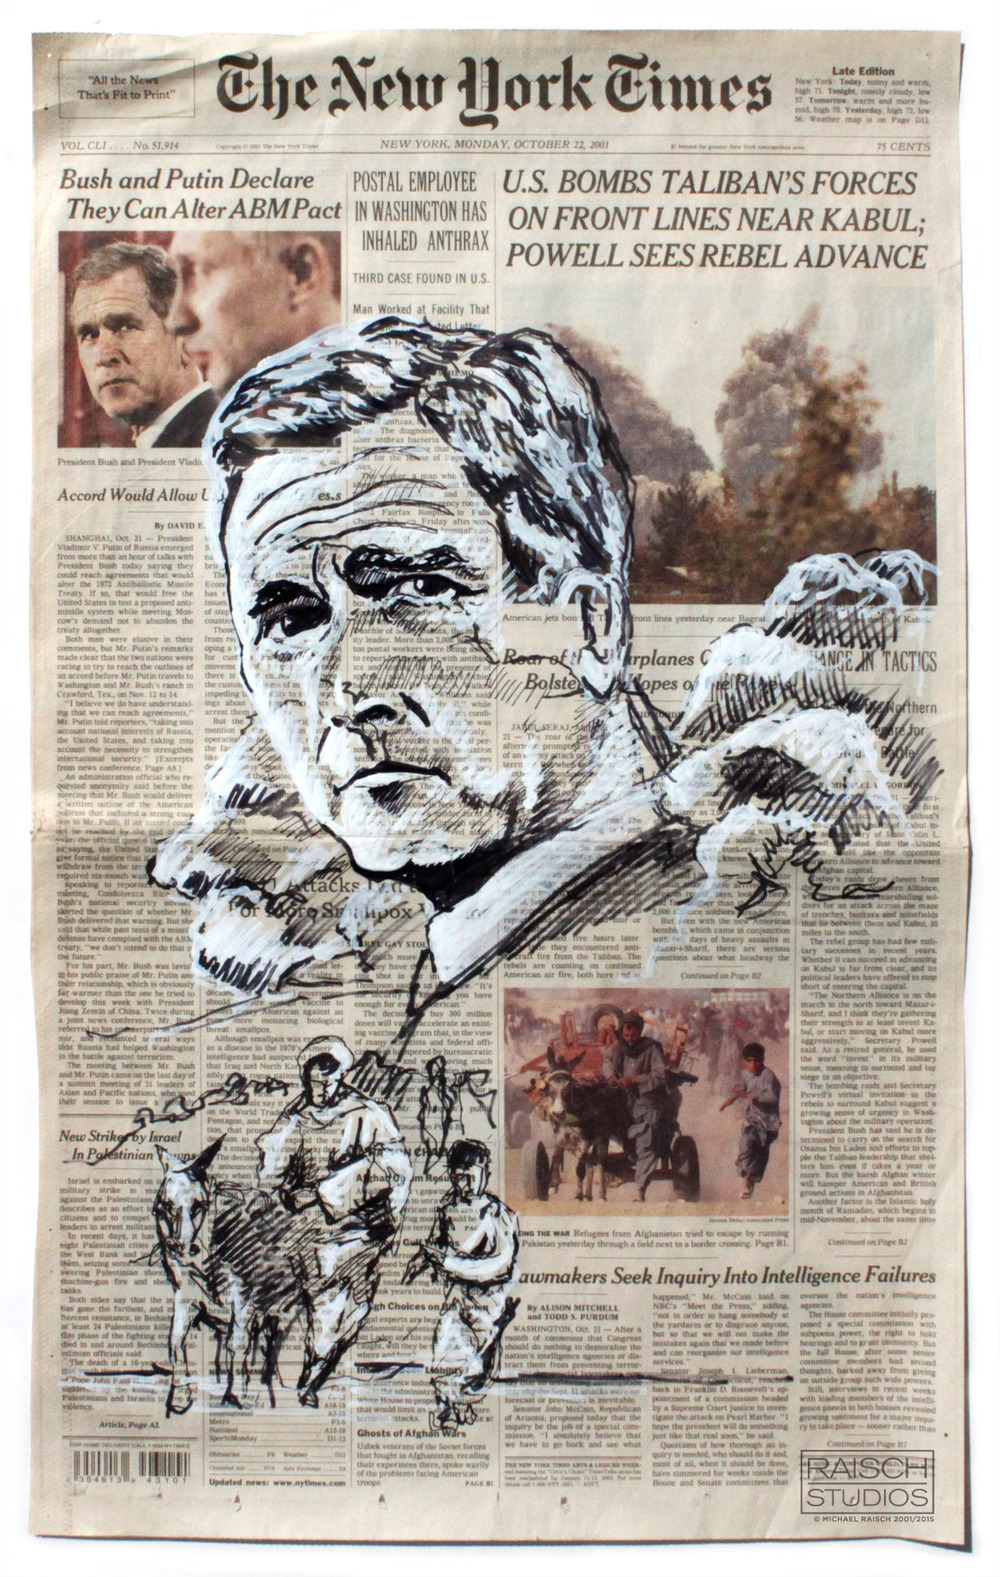 President Bush sketched on the cover of the New York Times, October 2001 © Michael Raisch